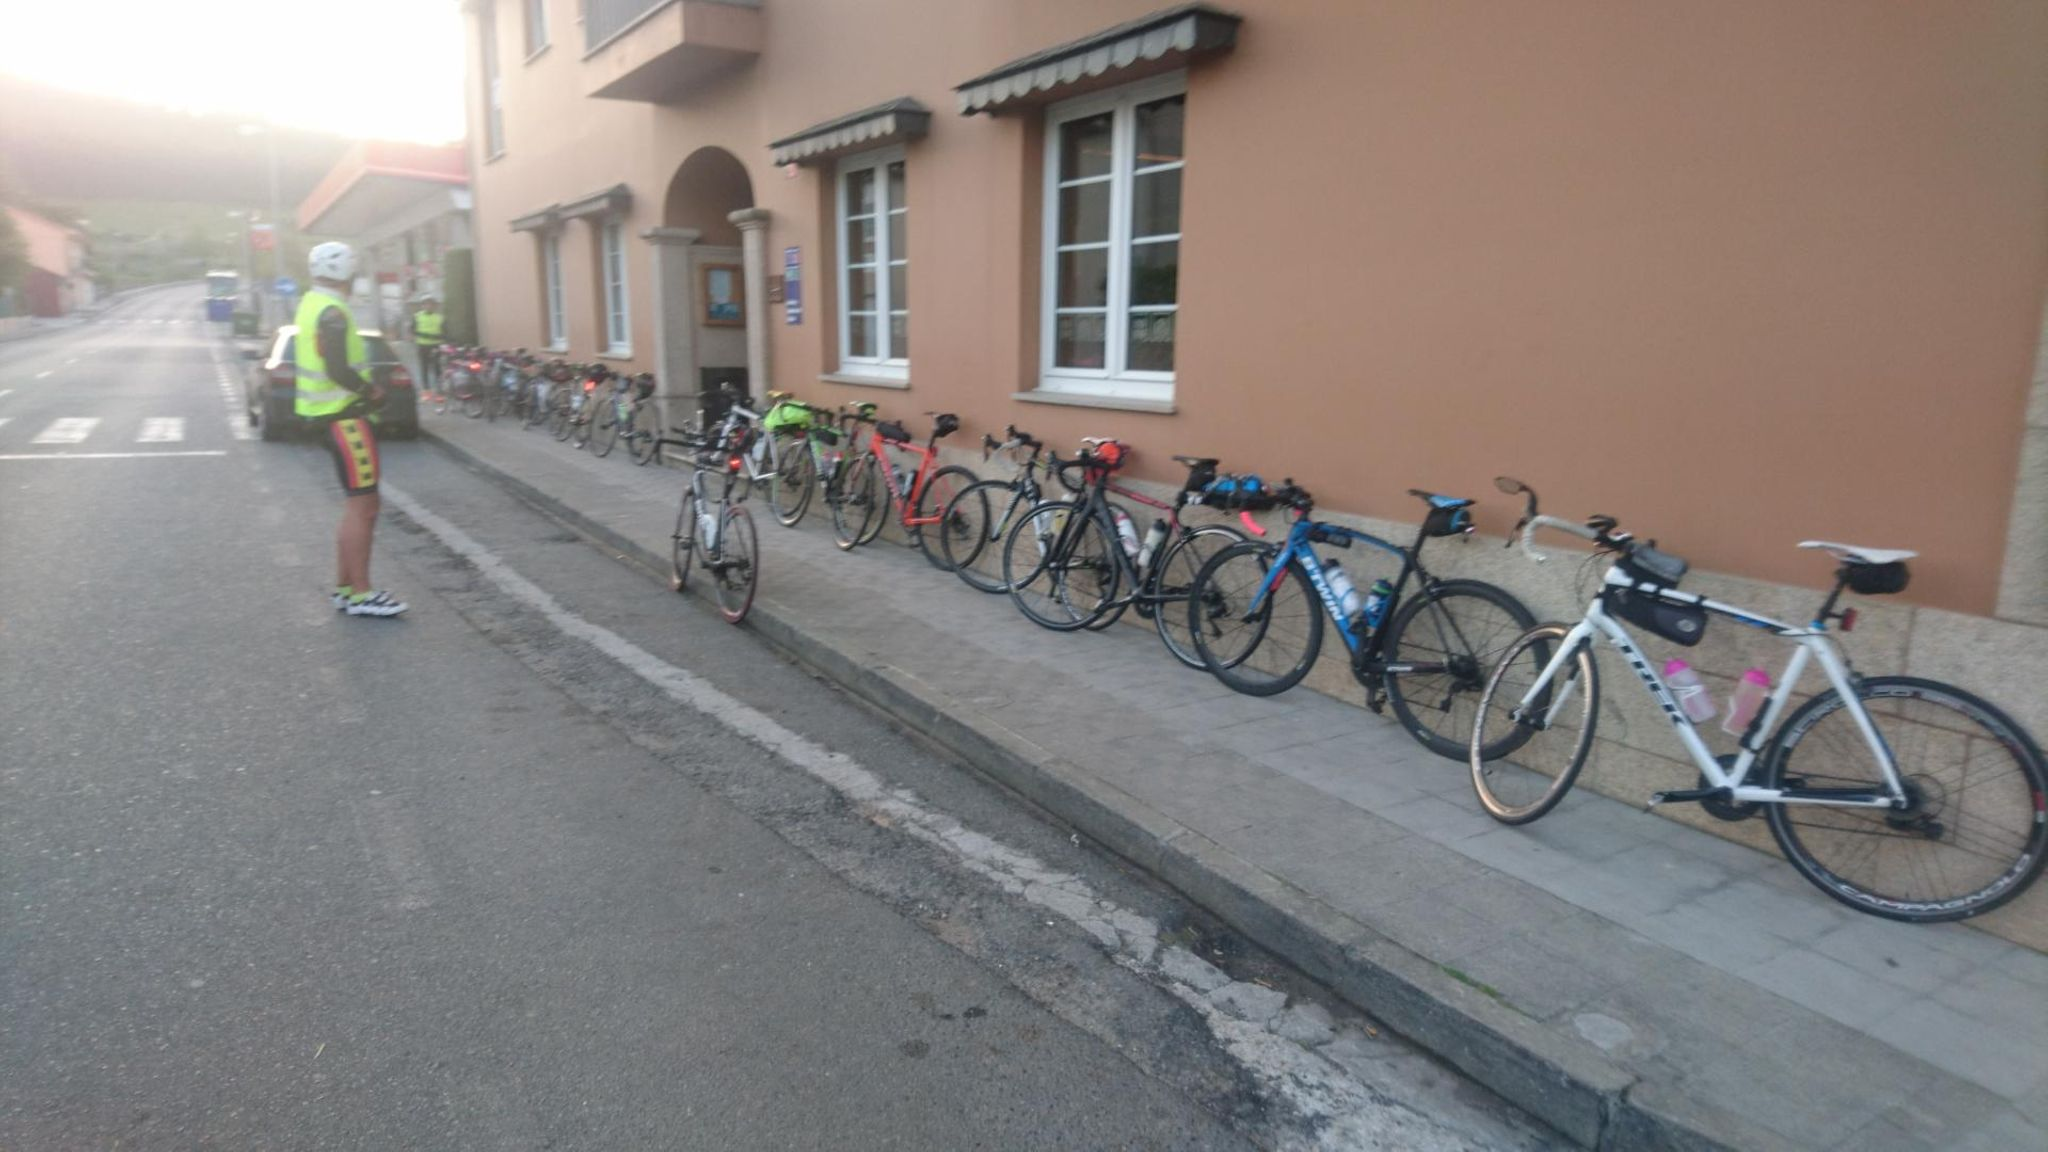 All bikes parked at the café in Irixoa (1)